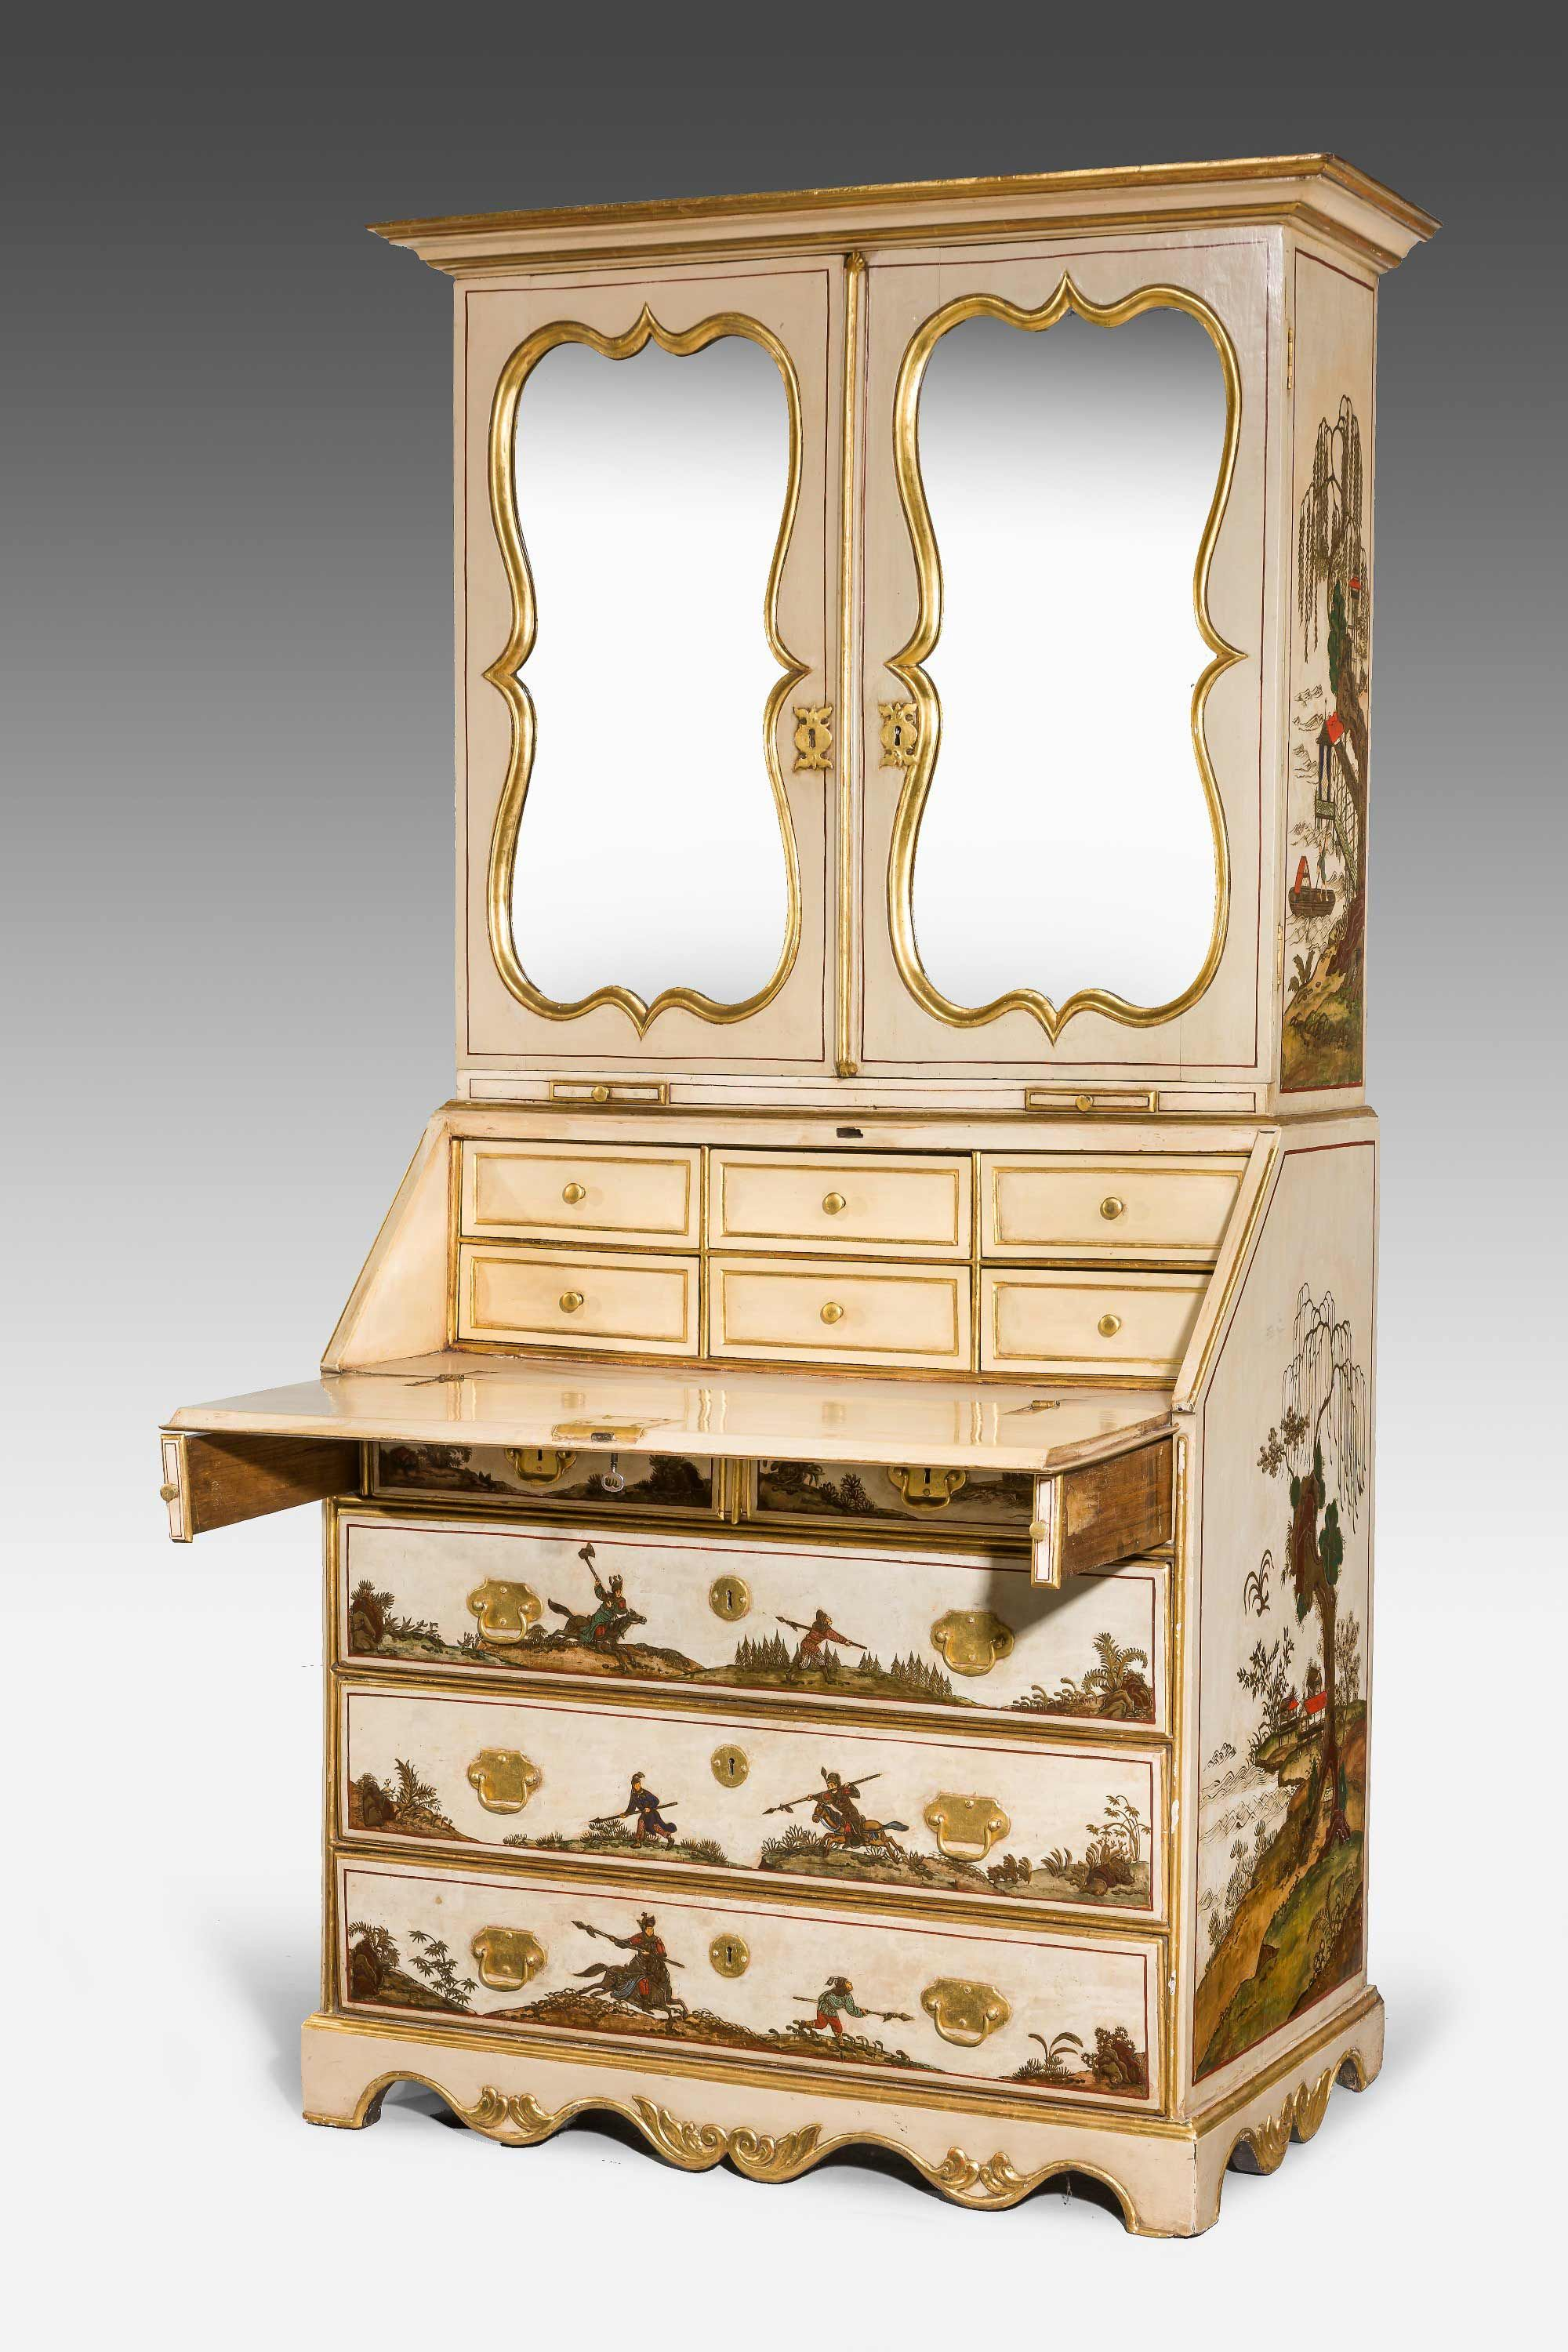 Early 18th Century German Chinoiserie Lacquered Bureau